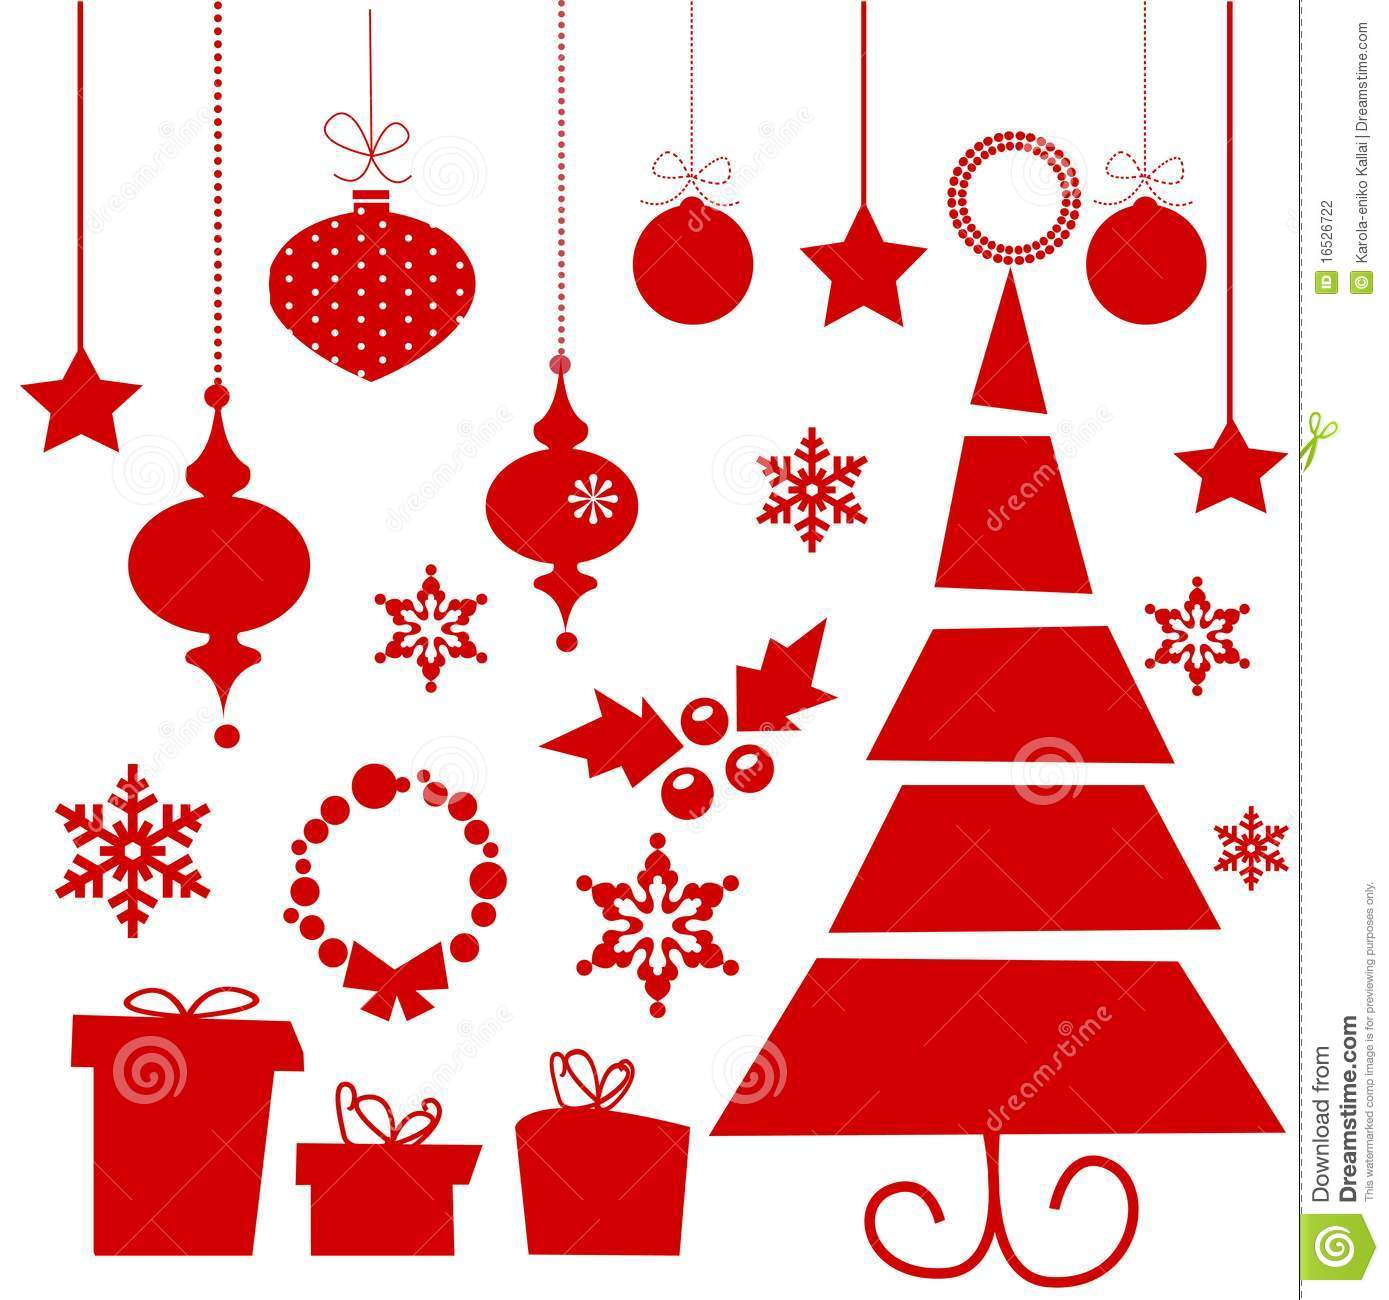 Christmas holiday dress - Christmas Elements Stock Photography Image 16526722